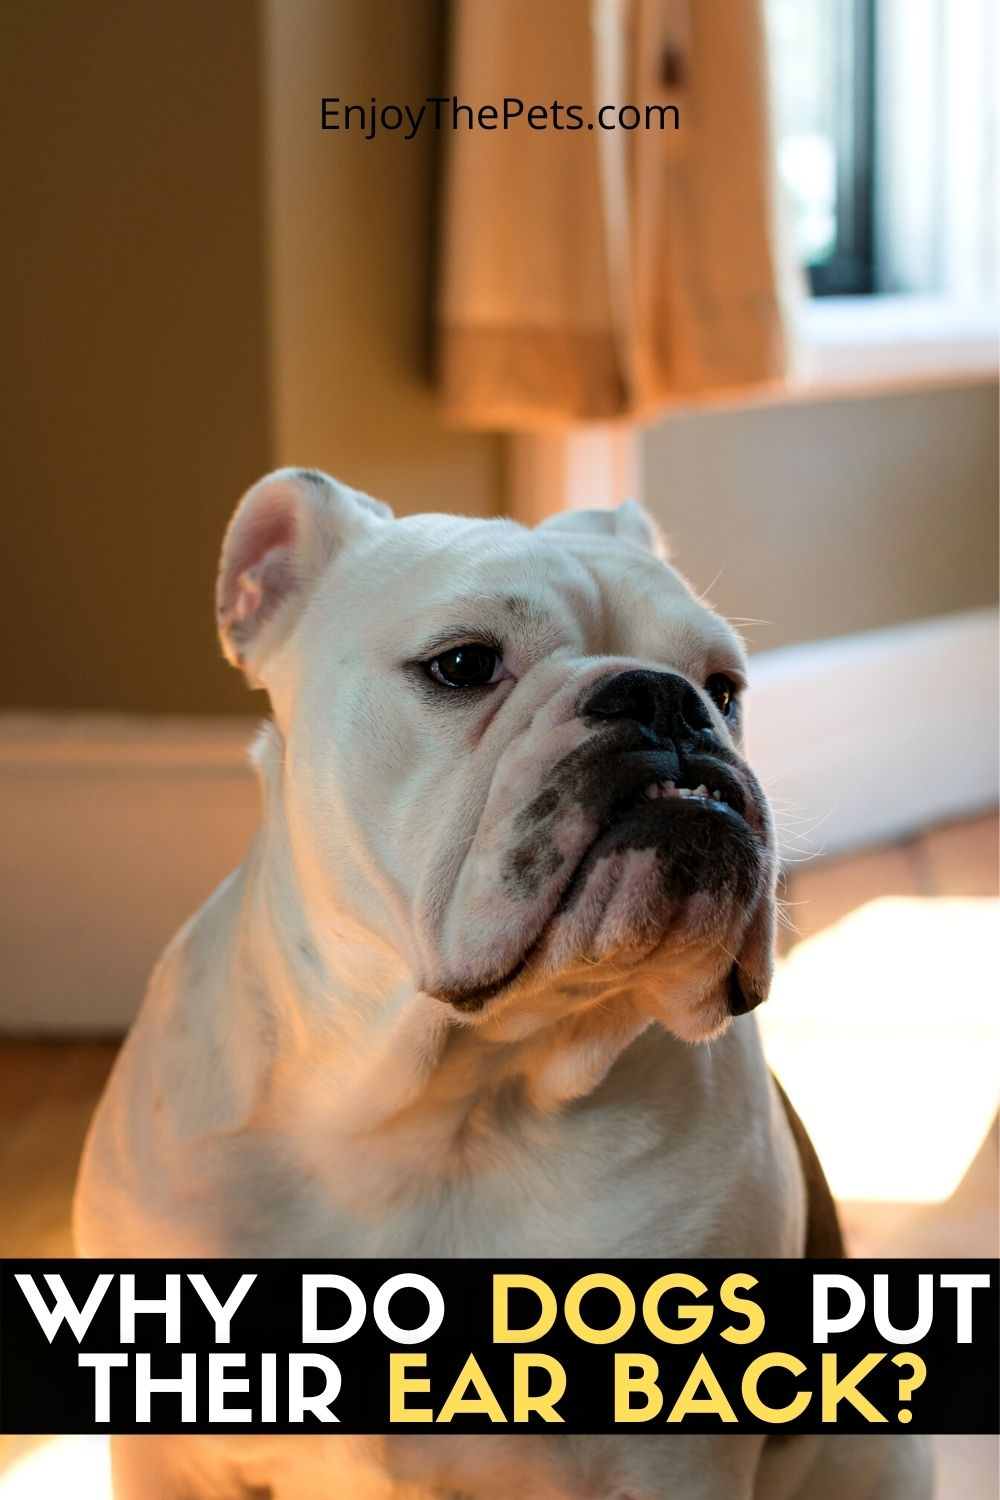 WHY DO DOGS PUT THEIR EAR BACK_